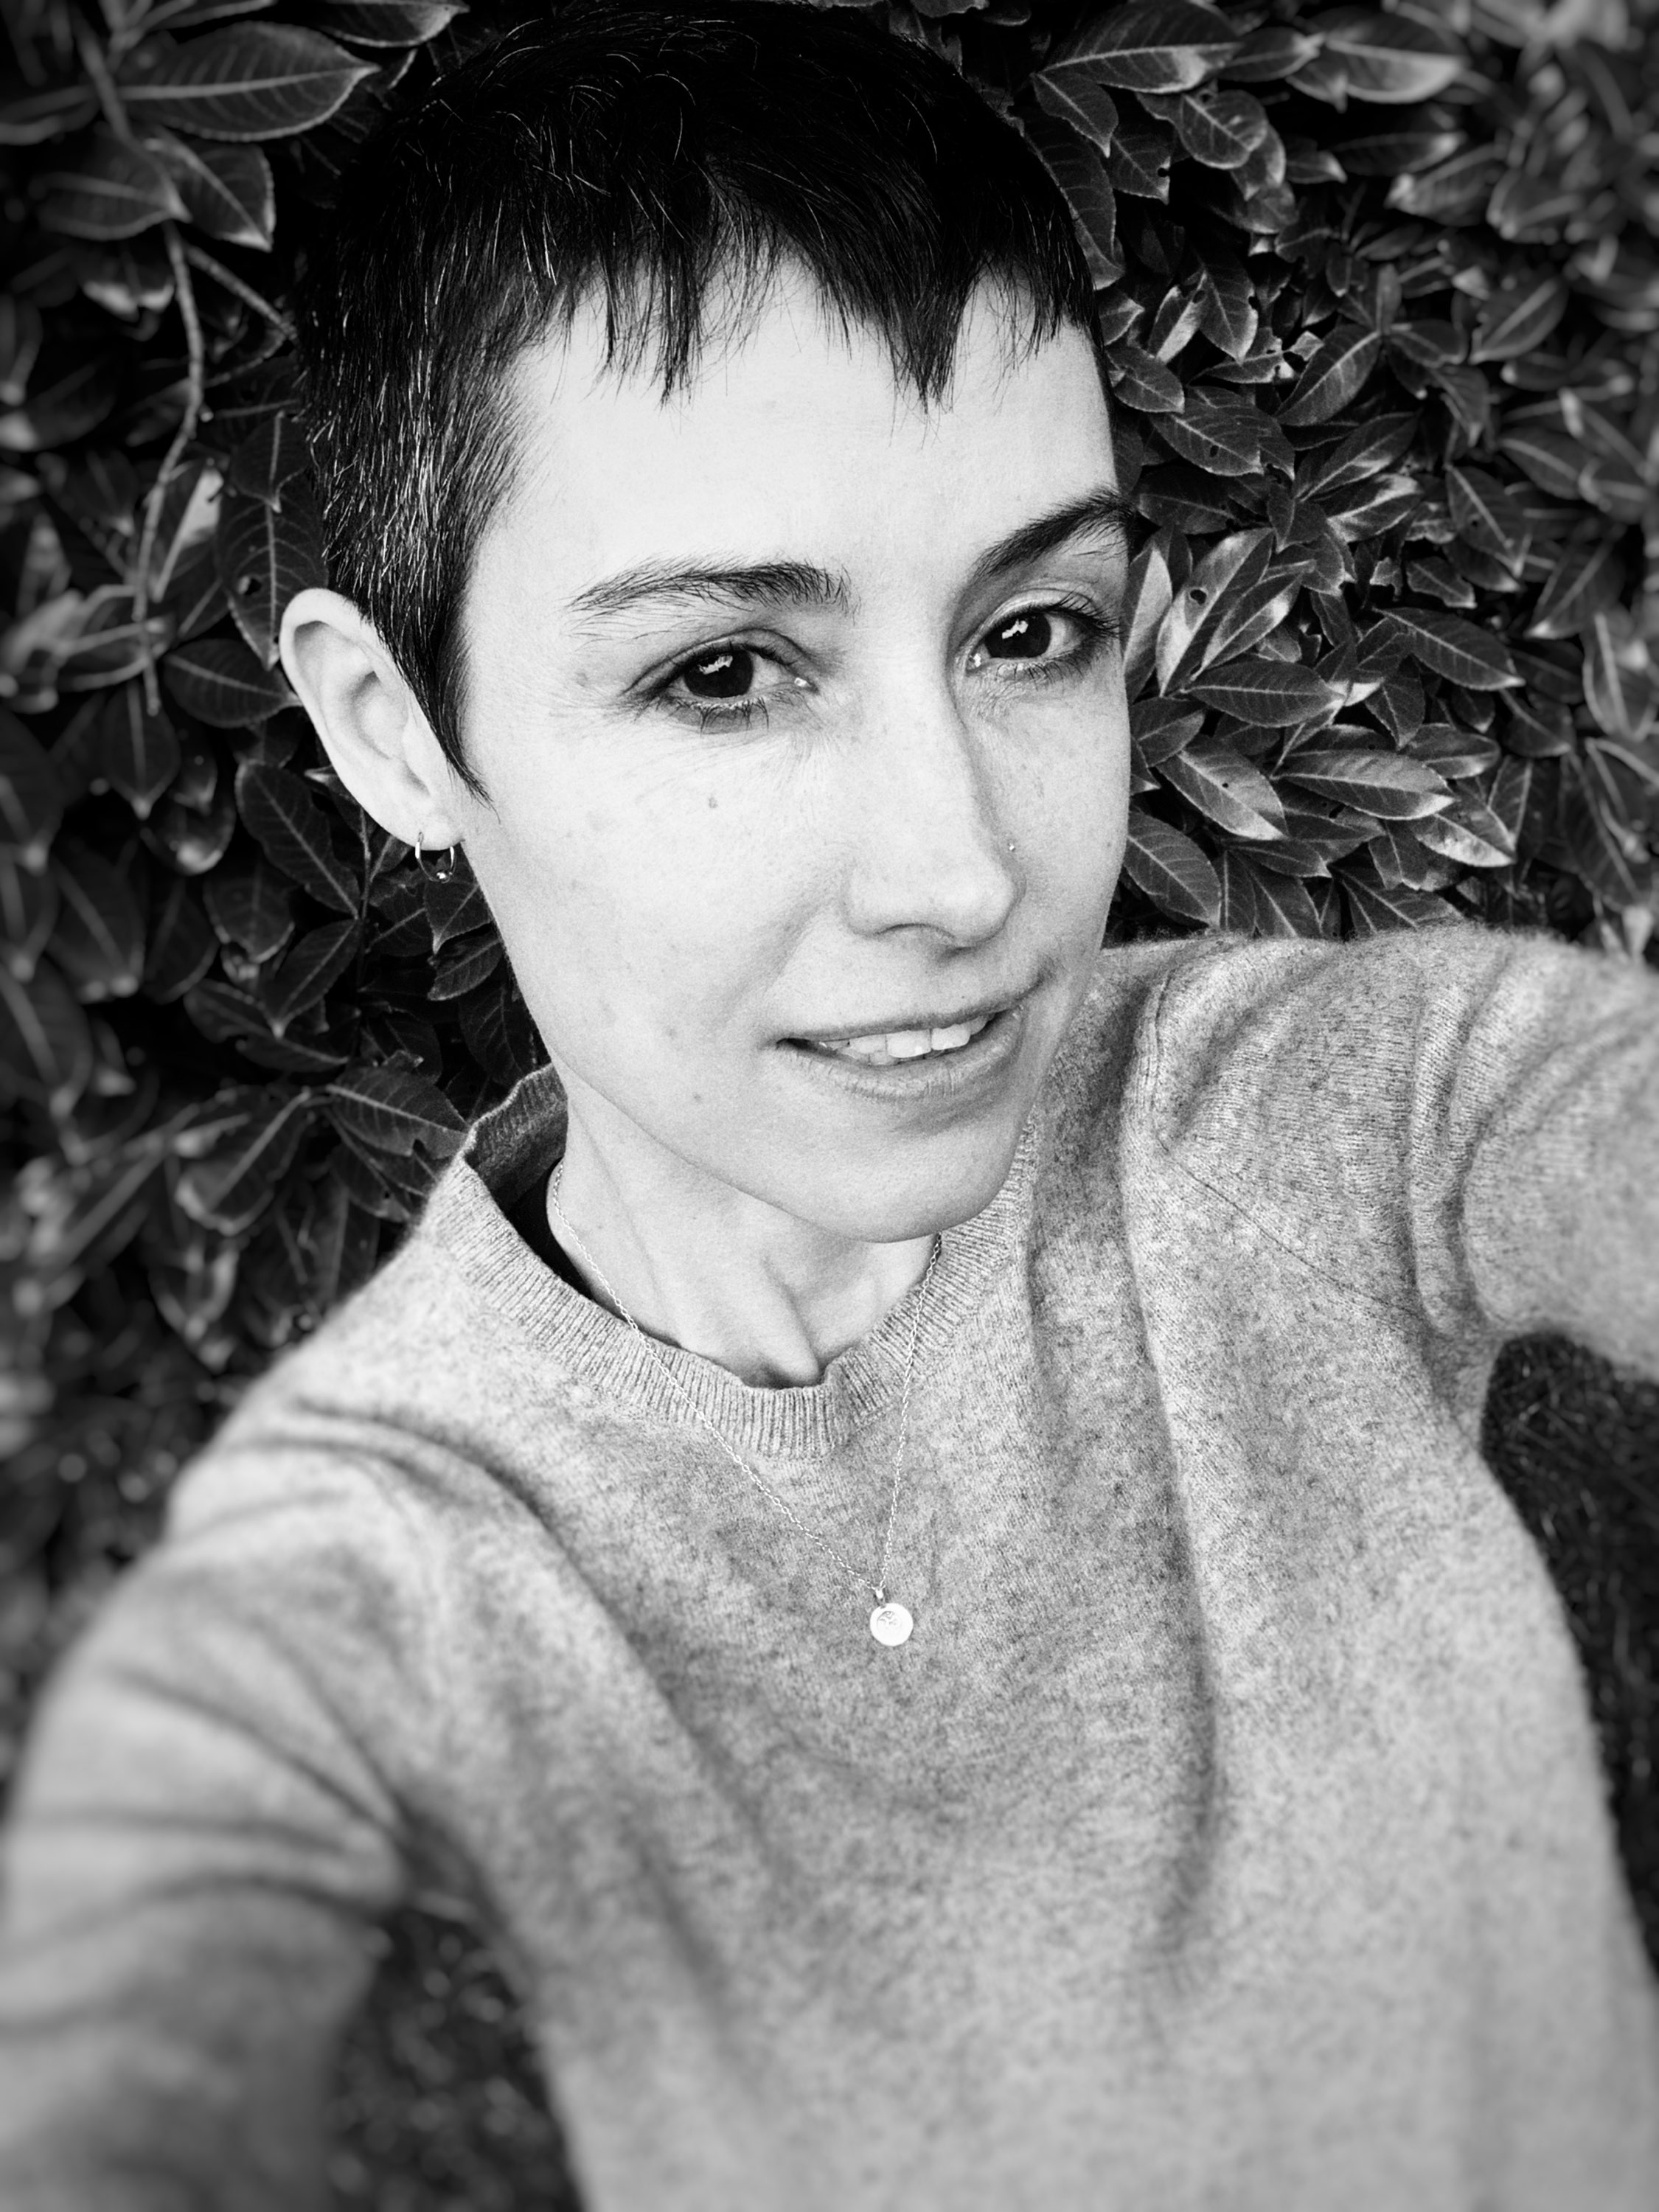 Backyard selfie – those greys!